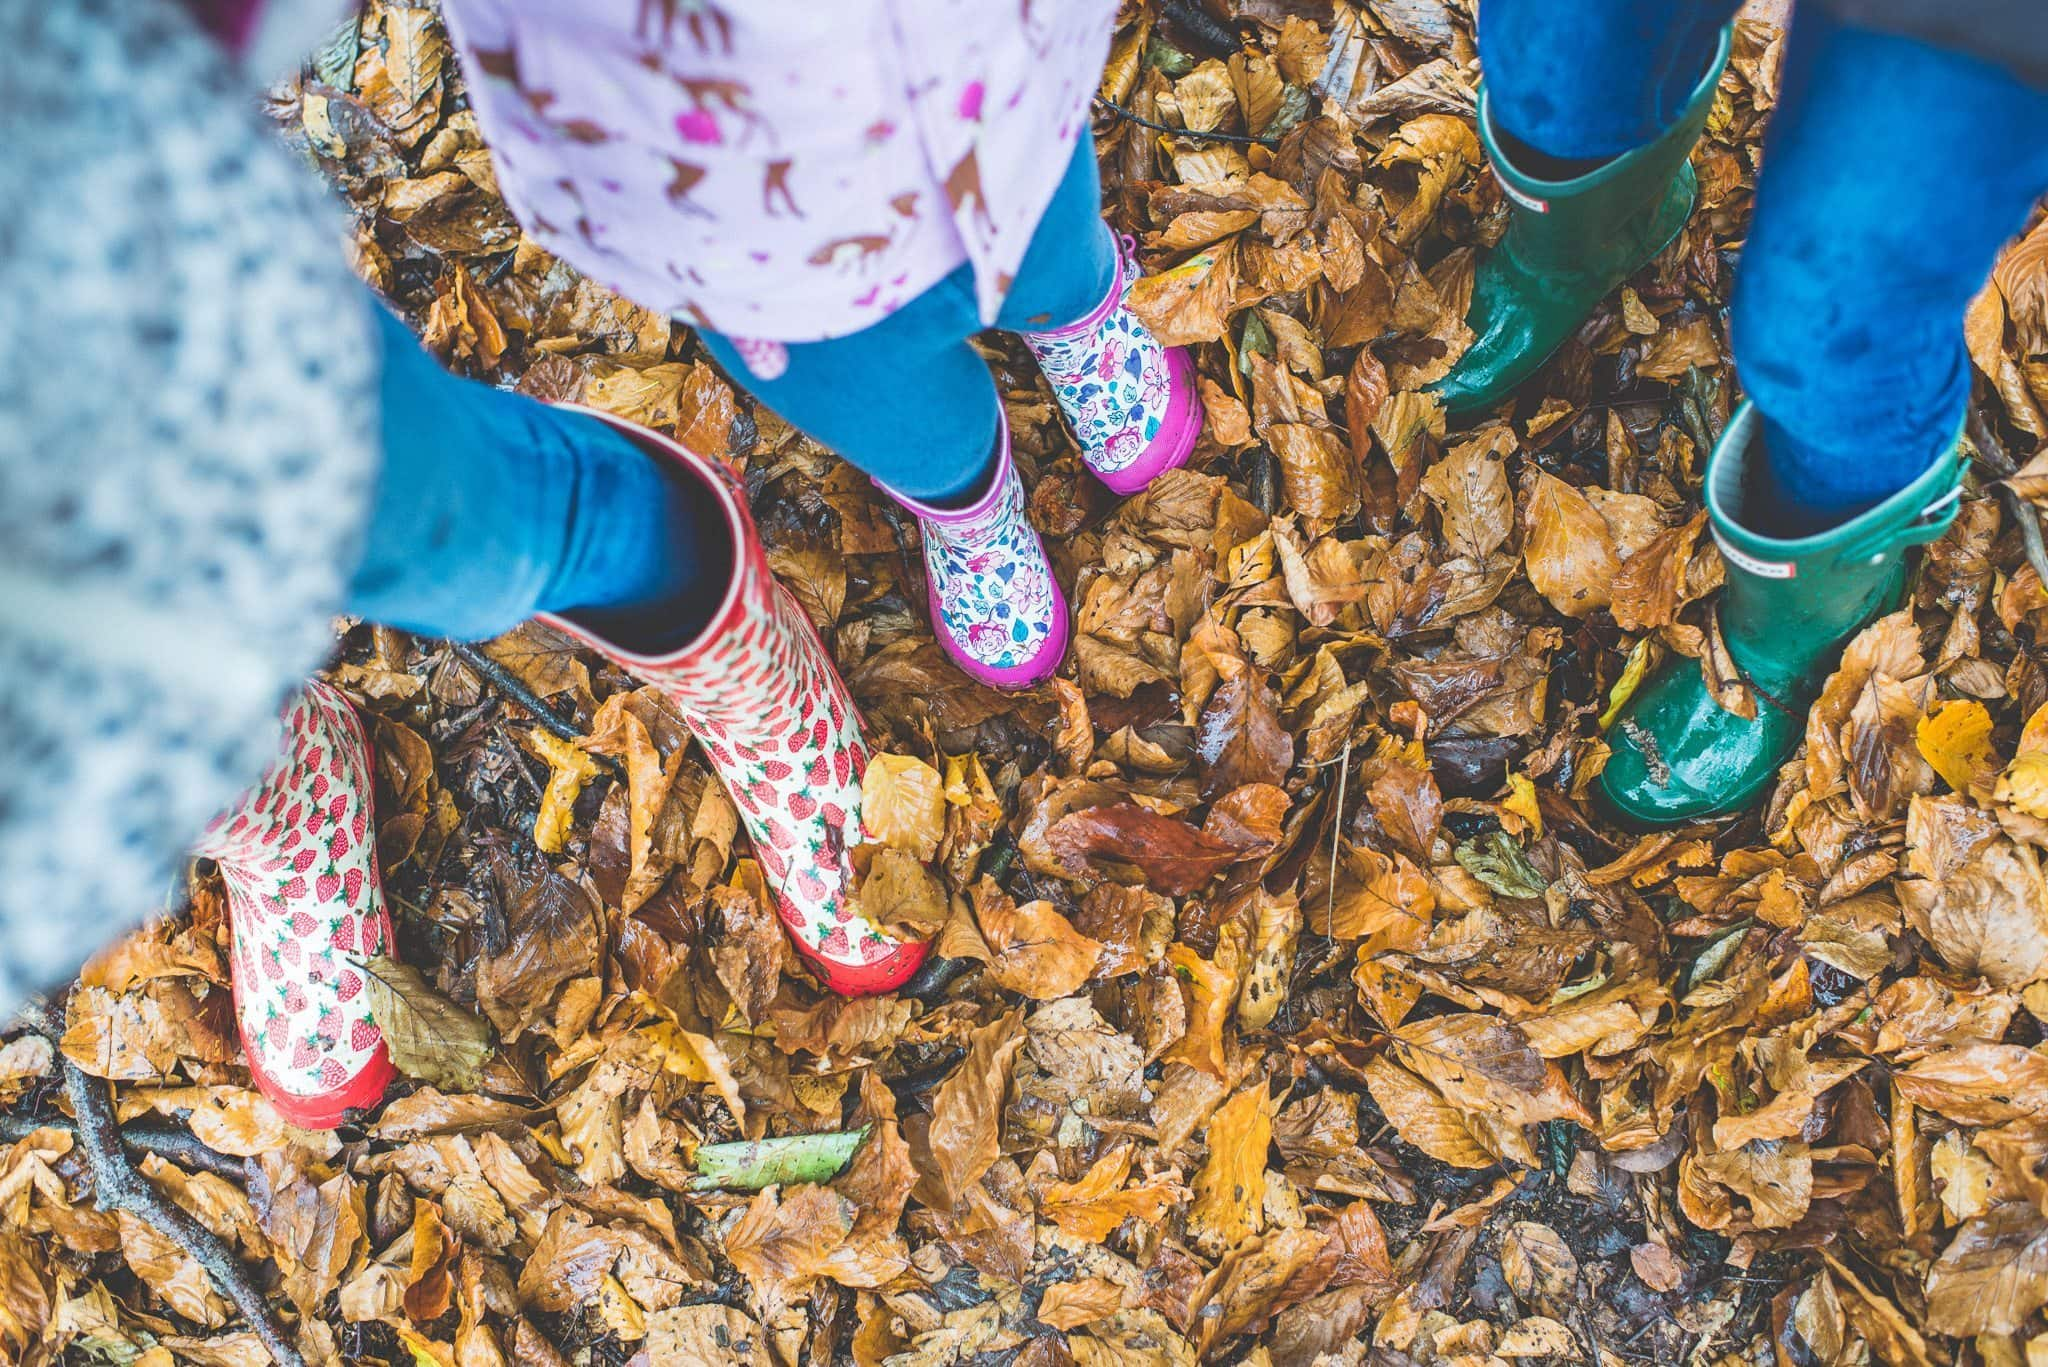 Three sets of children's wellies kicking up autumn leaves at Knole Park in Sevenoaks